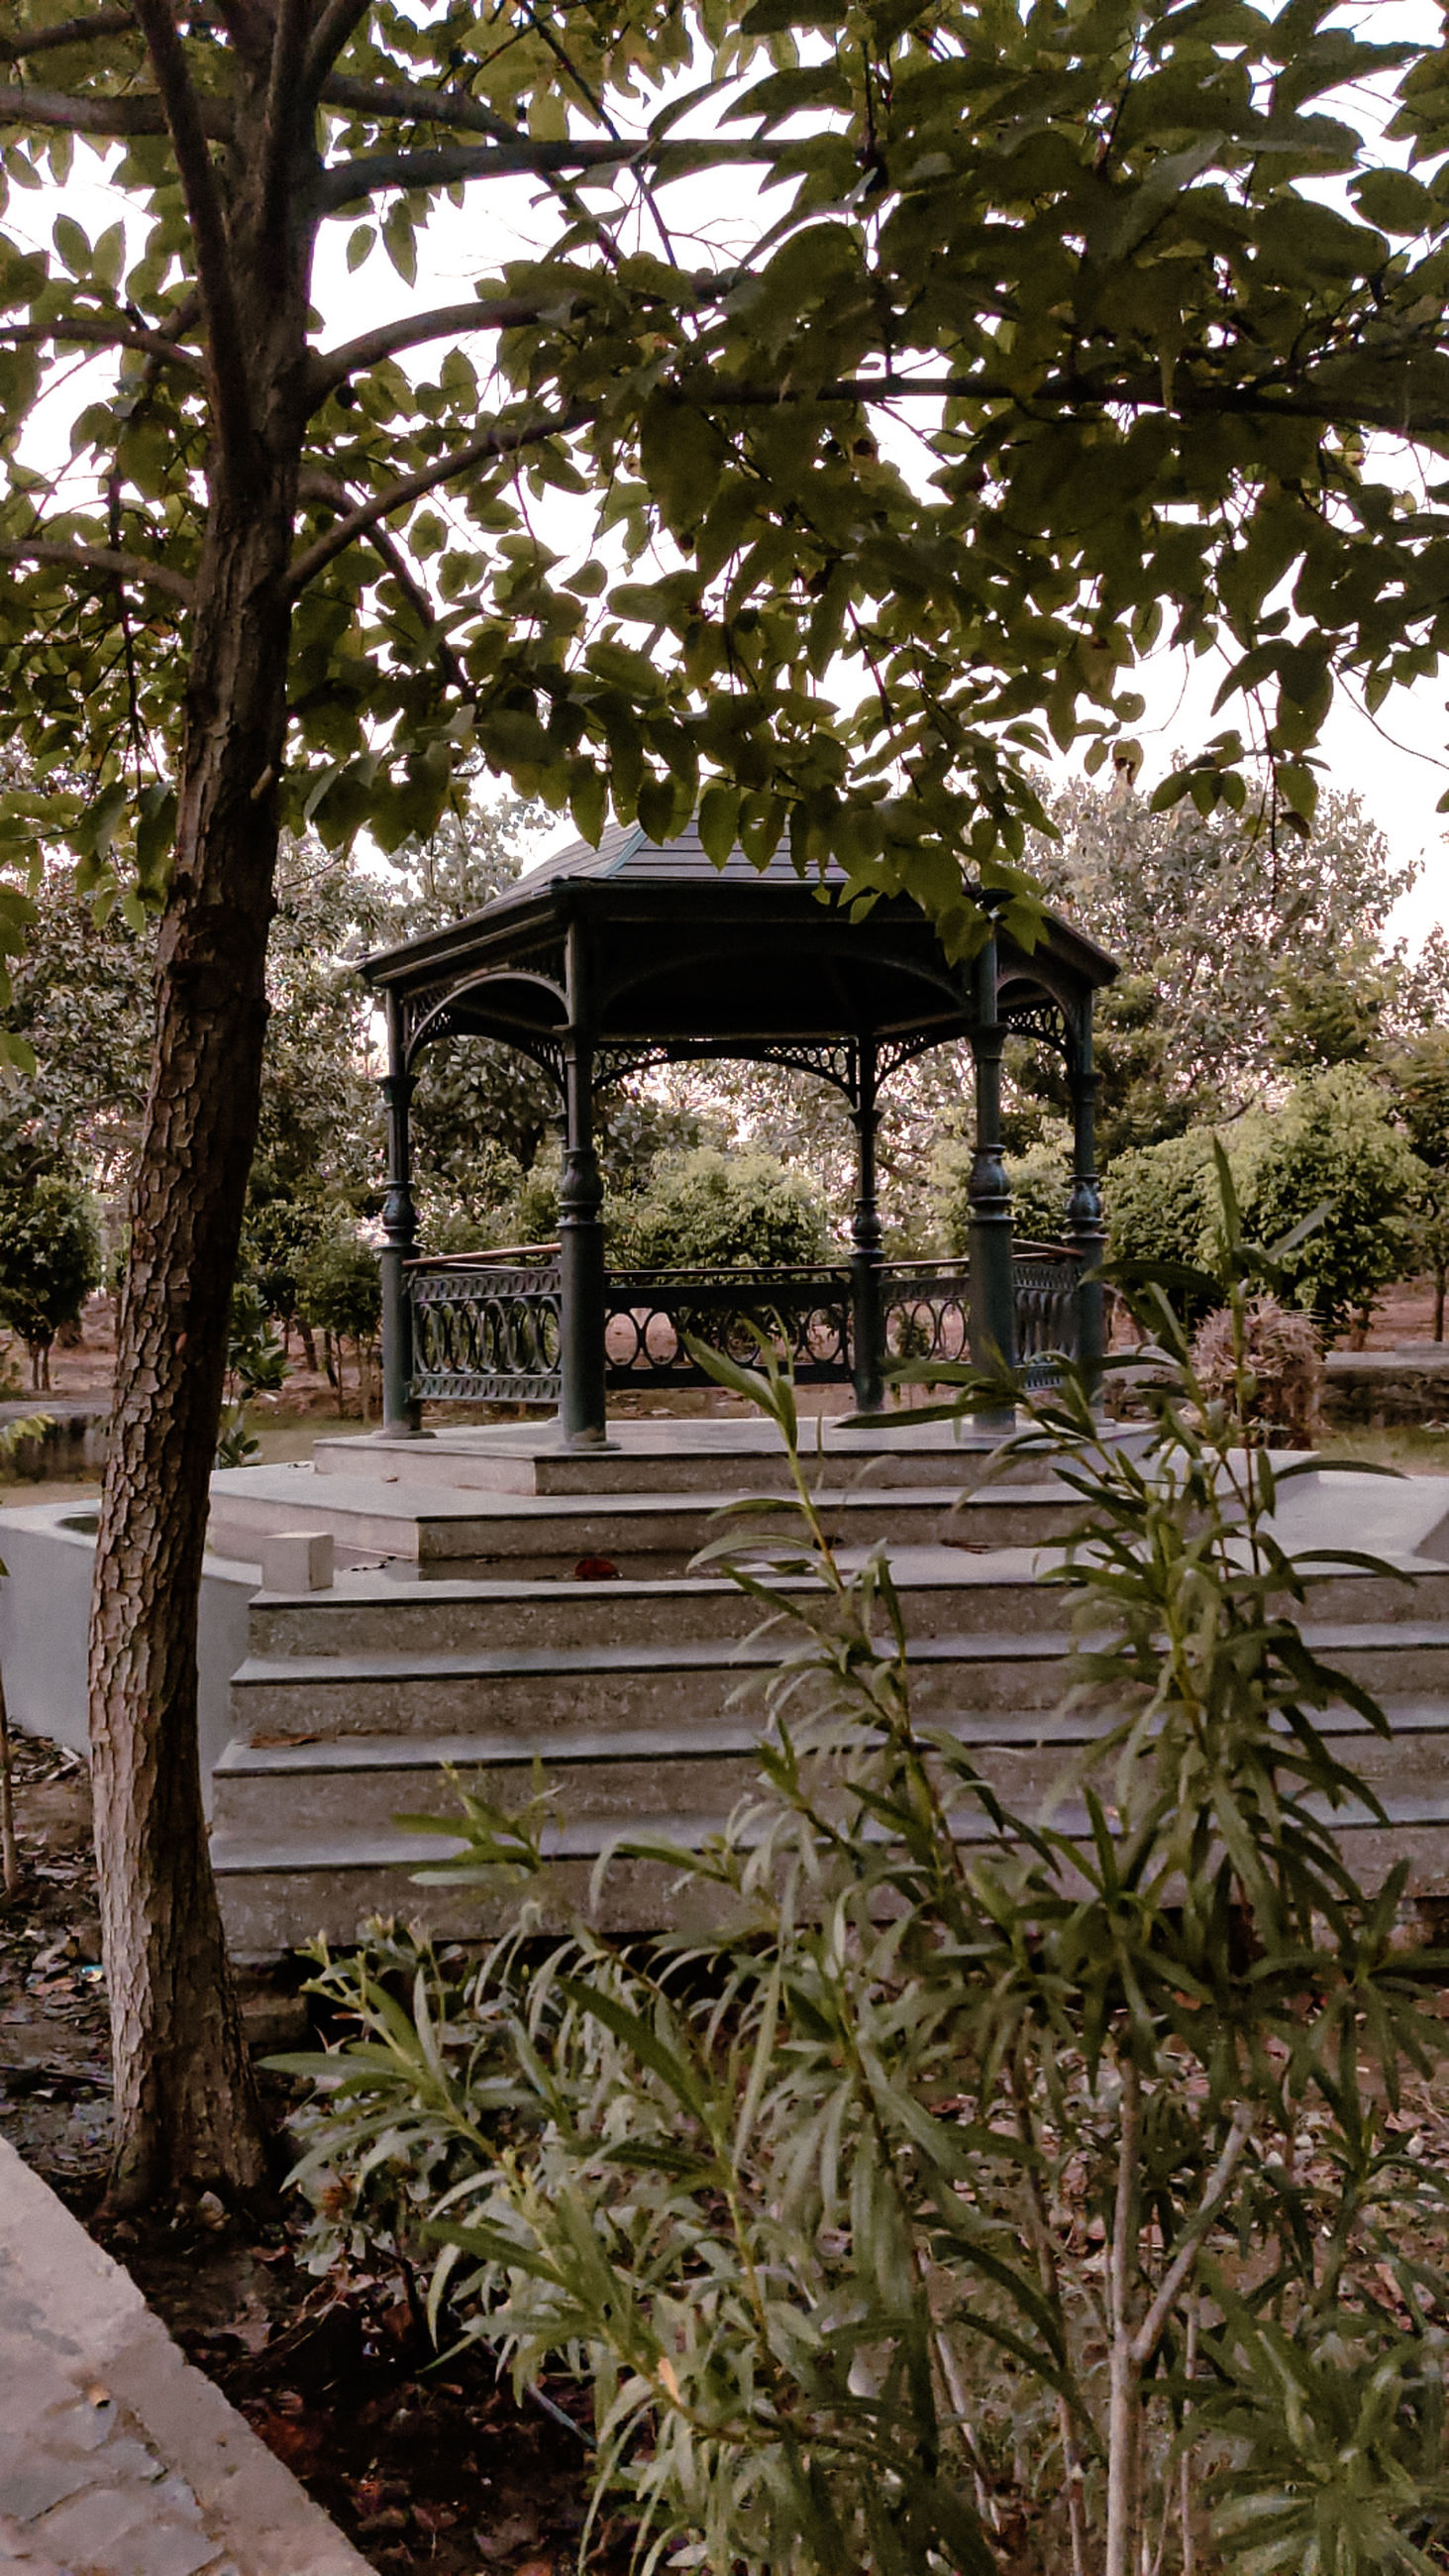 plant, tree, nature, garden, architecture, no people, backyard, growth, day, built structure, outdoors, yard, park, flower, park - man made space, tranquility, outdoor structure, footpath, seat, branch, beauty in nature, bench, wood, water